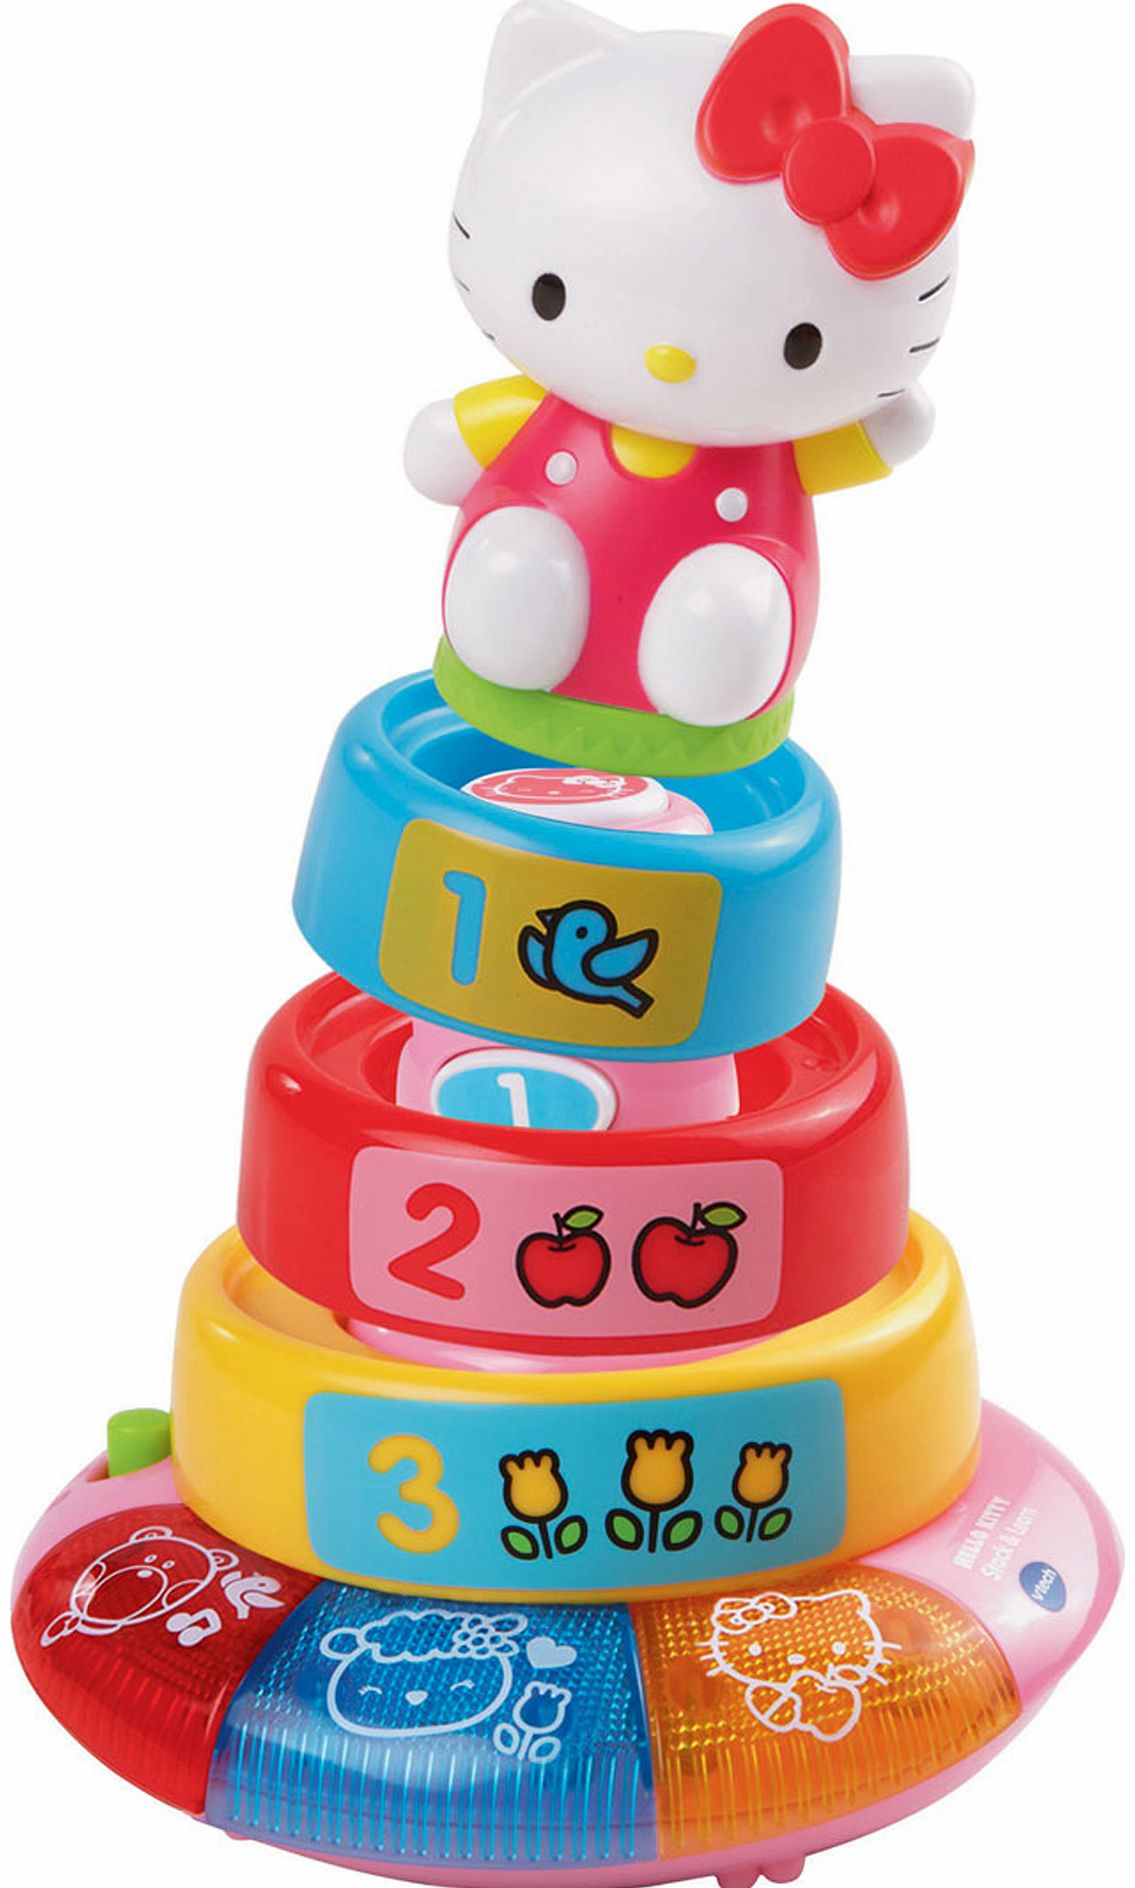 Superb img of Pics Photos Vtech Mobigo 2 Hello Kitty Game Pink Edition Kids  with #B98F12 color and 1135x1888 pixels